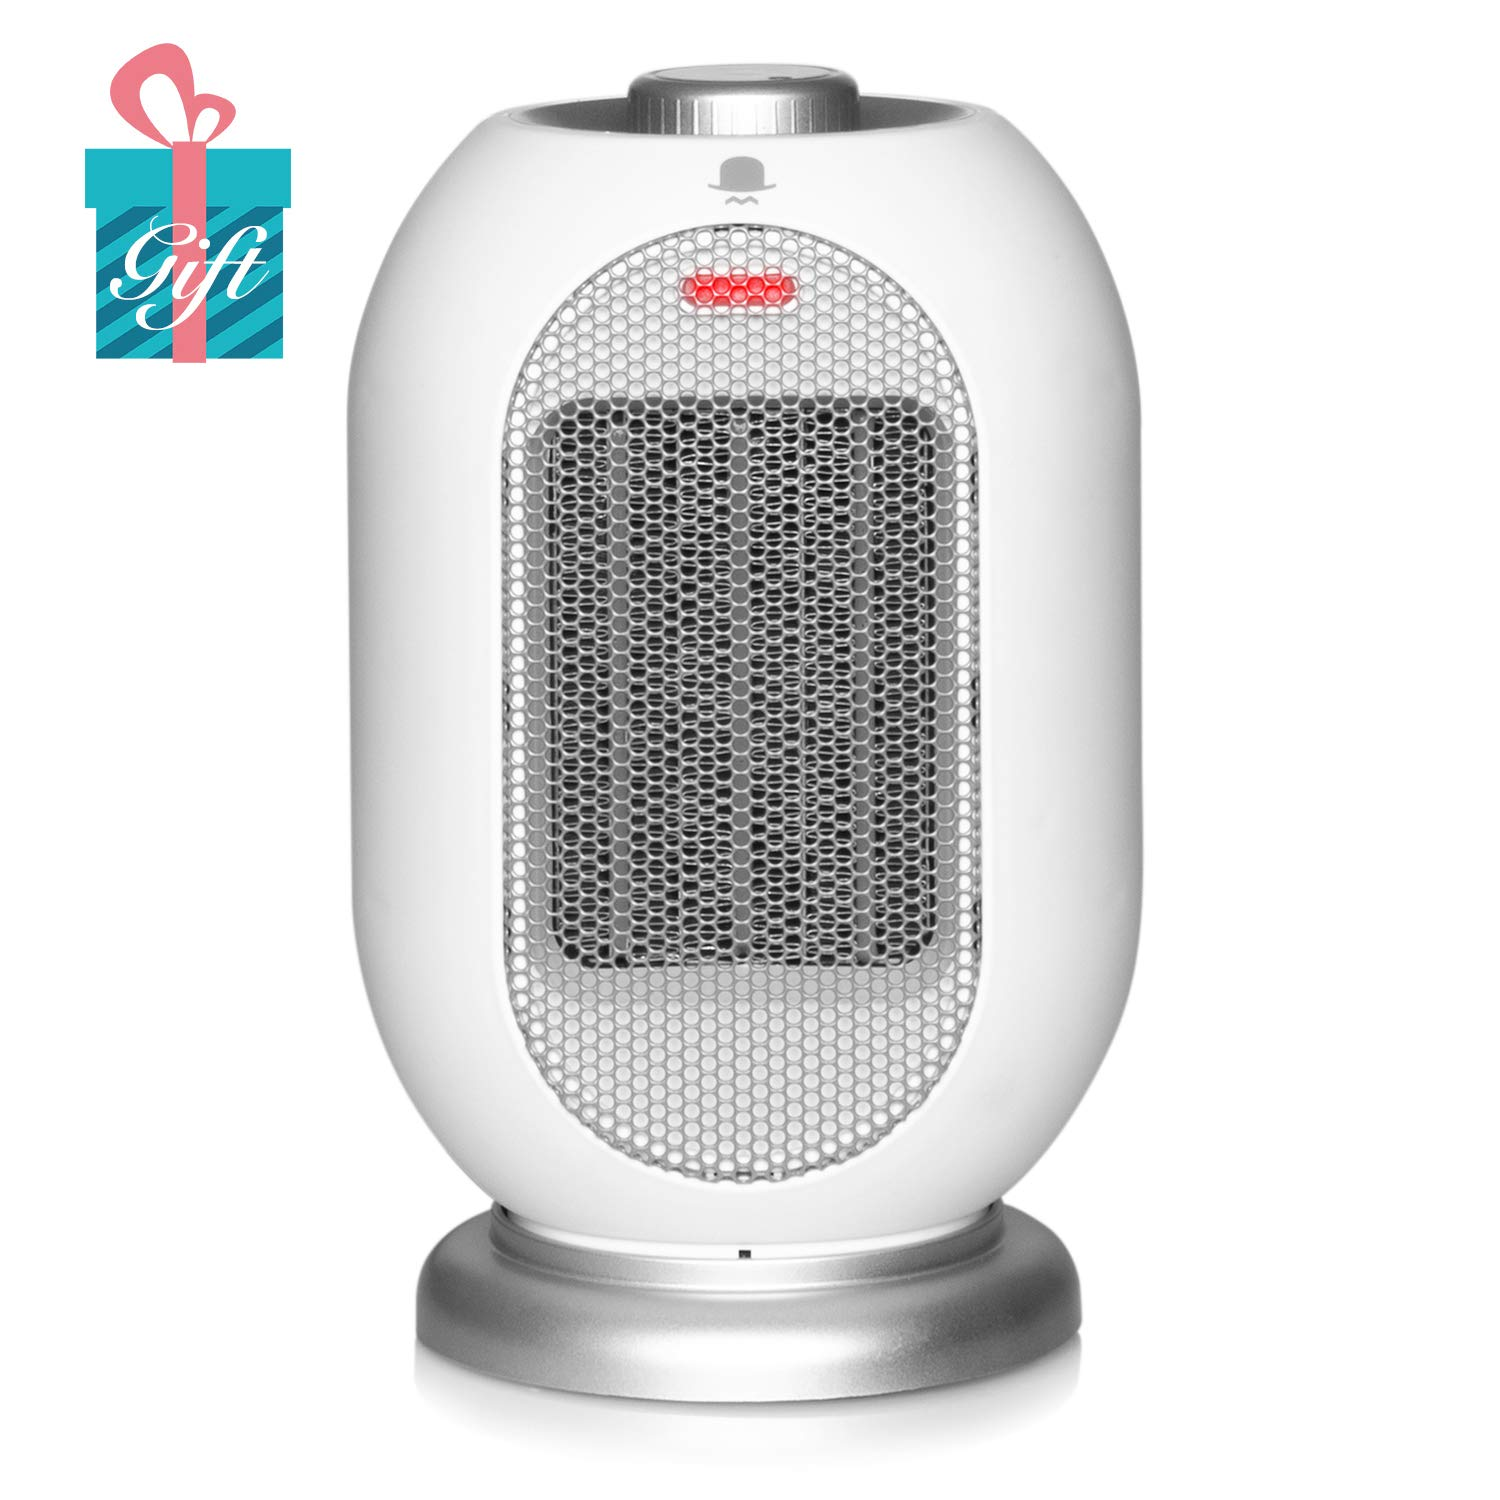 MRMIKKI Small Space Heater for Office, 1200W/700W Electric Heater for Home, Ceramic Heater with Fan, Tip-Over and Overheat Protection, 3s Quick Heating with Oscillation (Black)